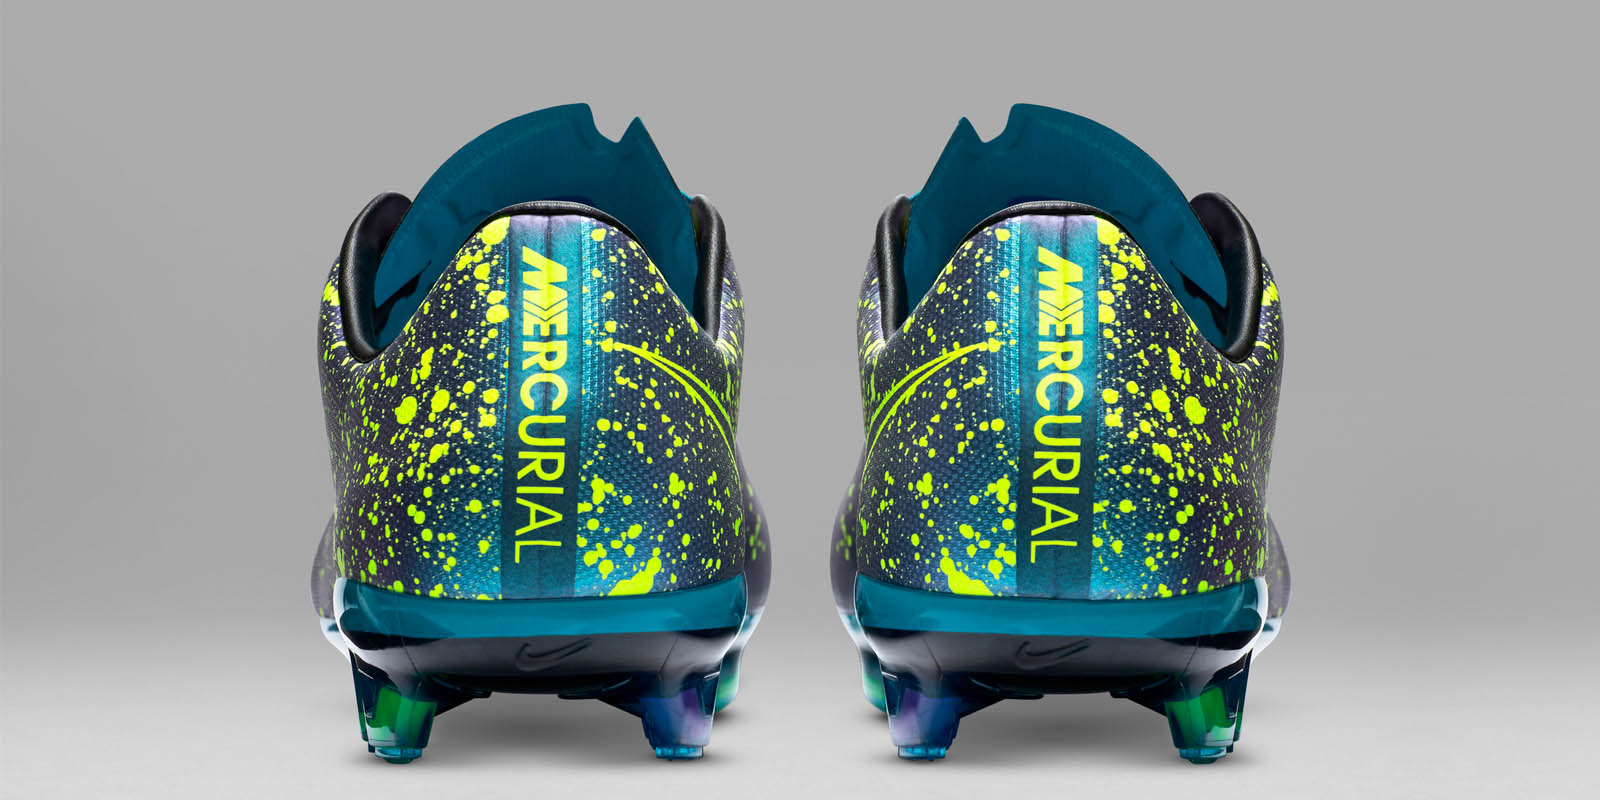 f551f3099f0fb ... Mercurial Vapor X Football Boots kick-off the 2015-2016 season in a  stunning way for the Nike Mercurial Boot silo, combining a blue base with  striking ...